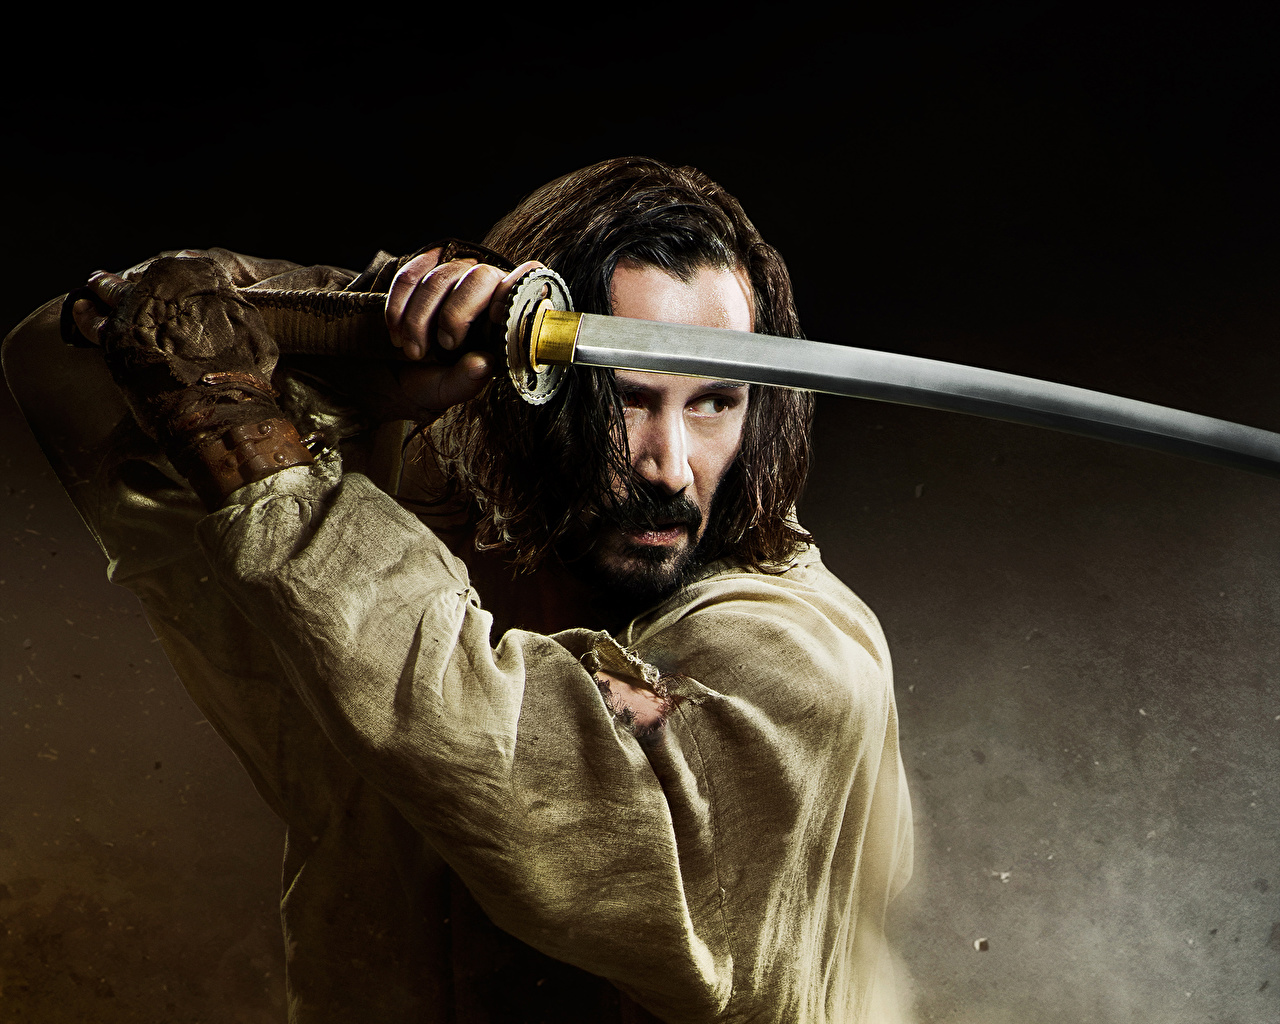 keanu reeves holding a sword photo and wallpaper hd